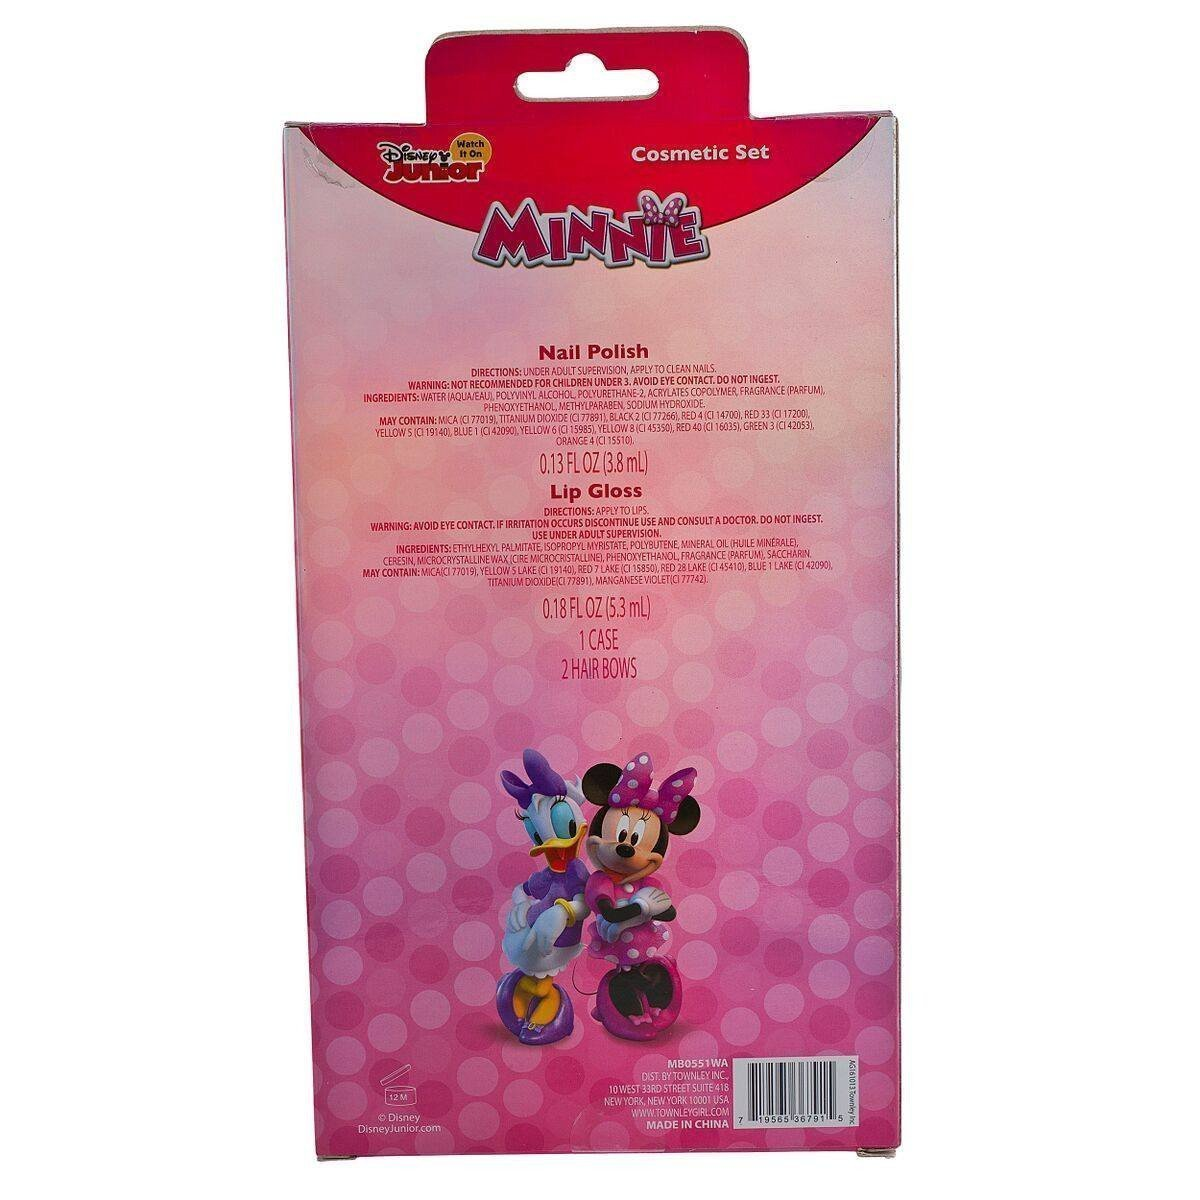 Minnie Mouse Cosmetic Set – TownleyGirl